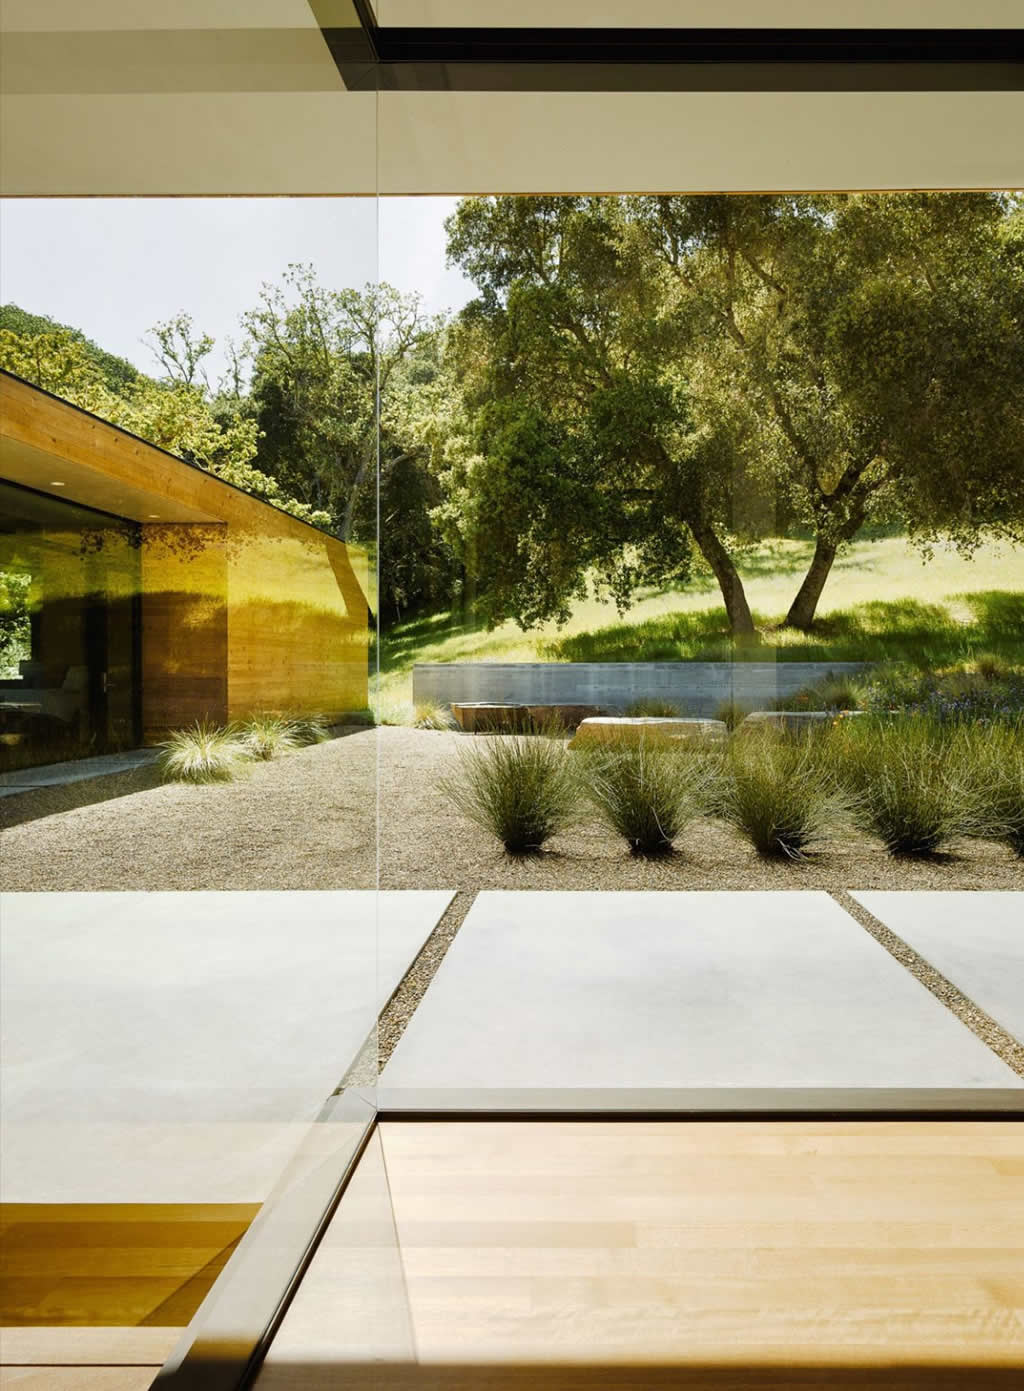 Residence In Carmel Valley By Sagan Piechota Architecture (7)